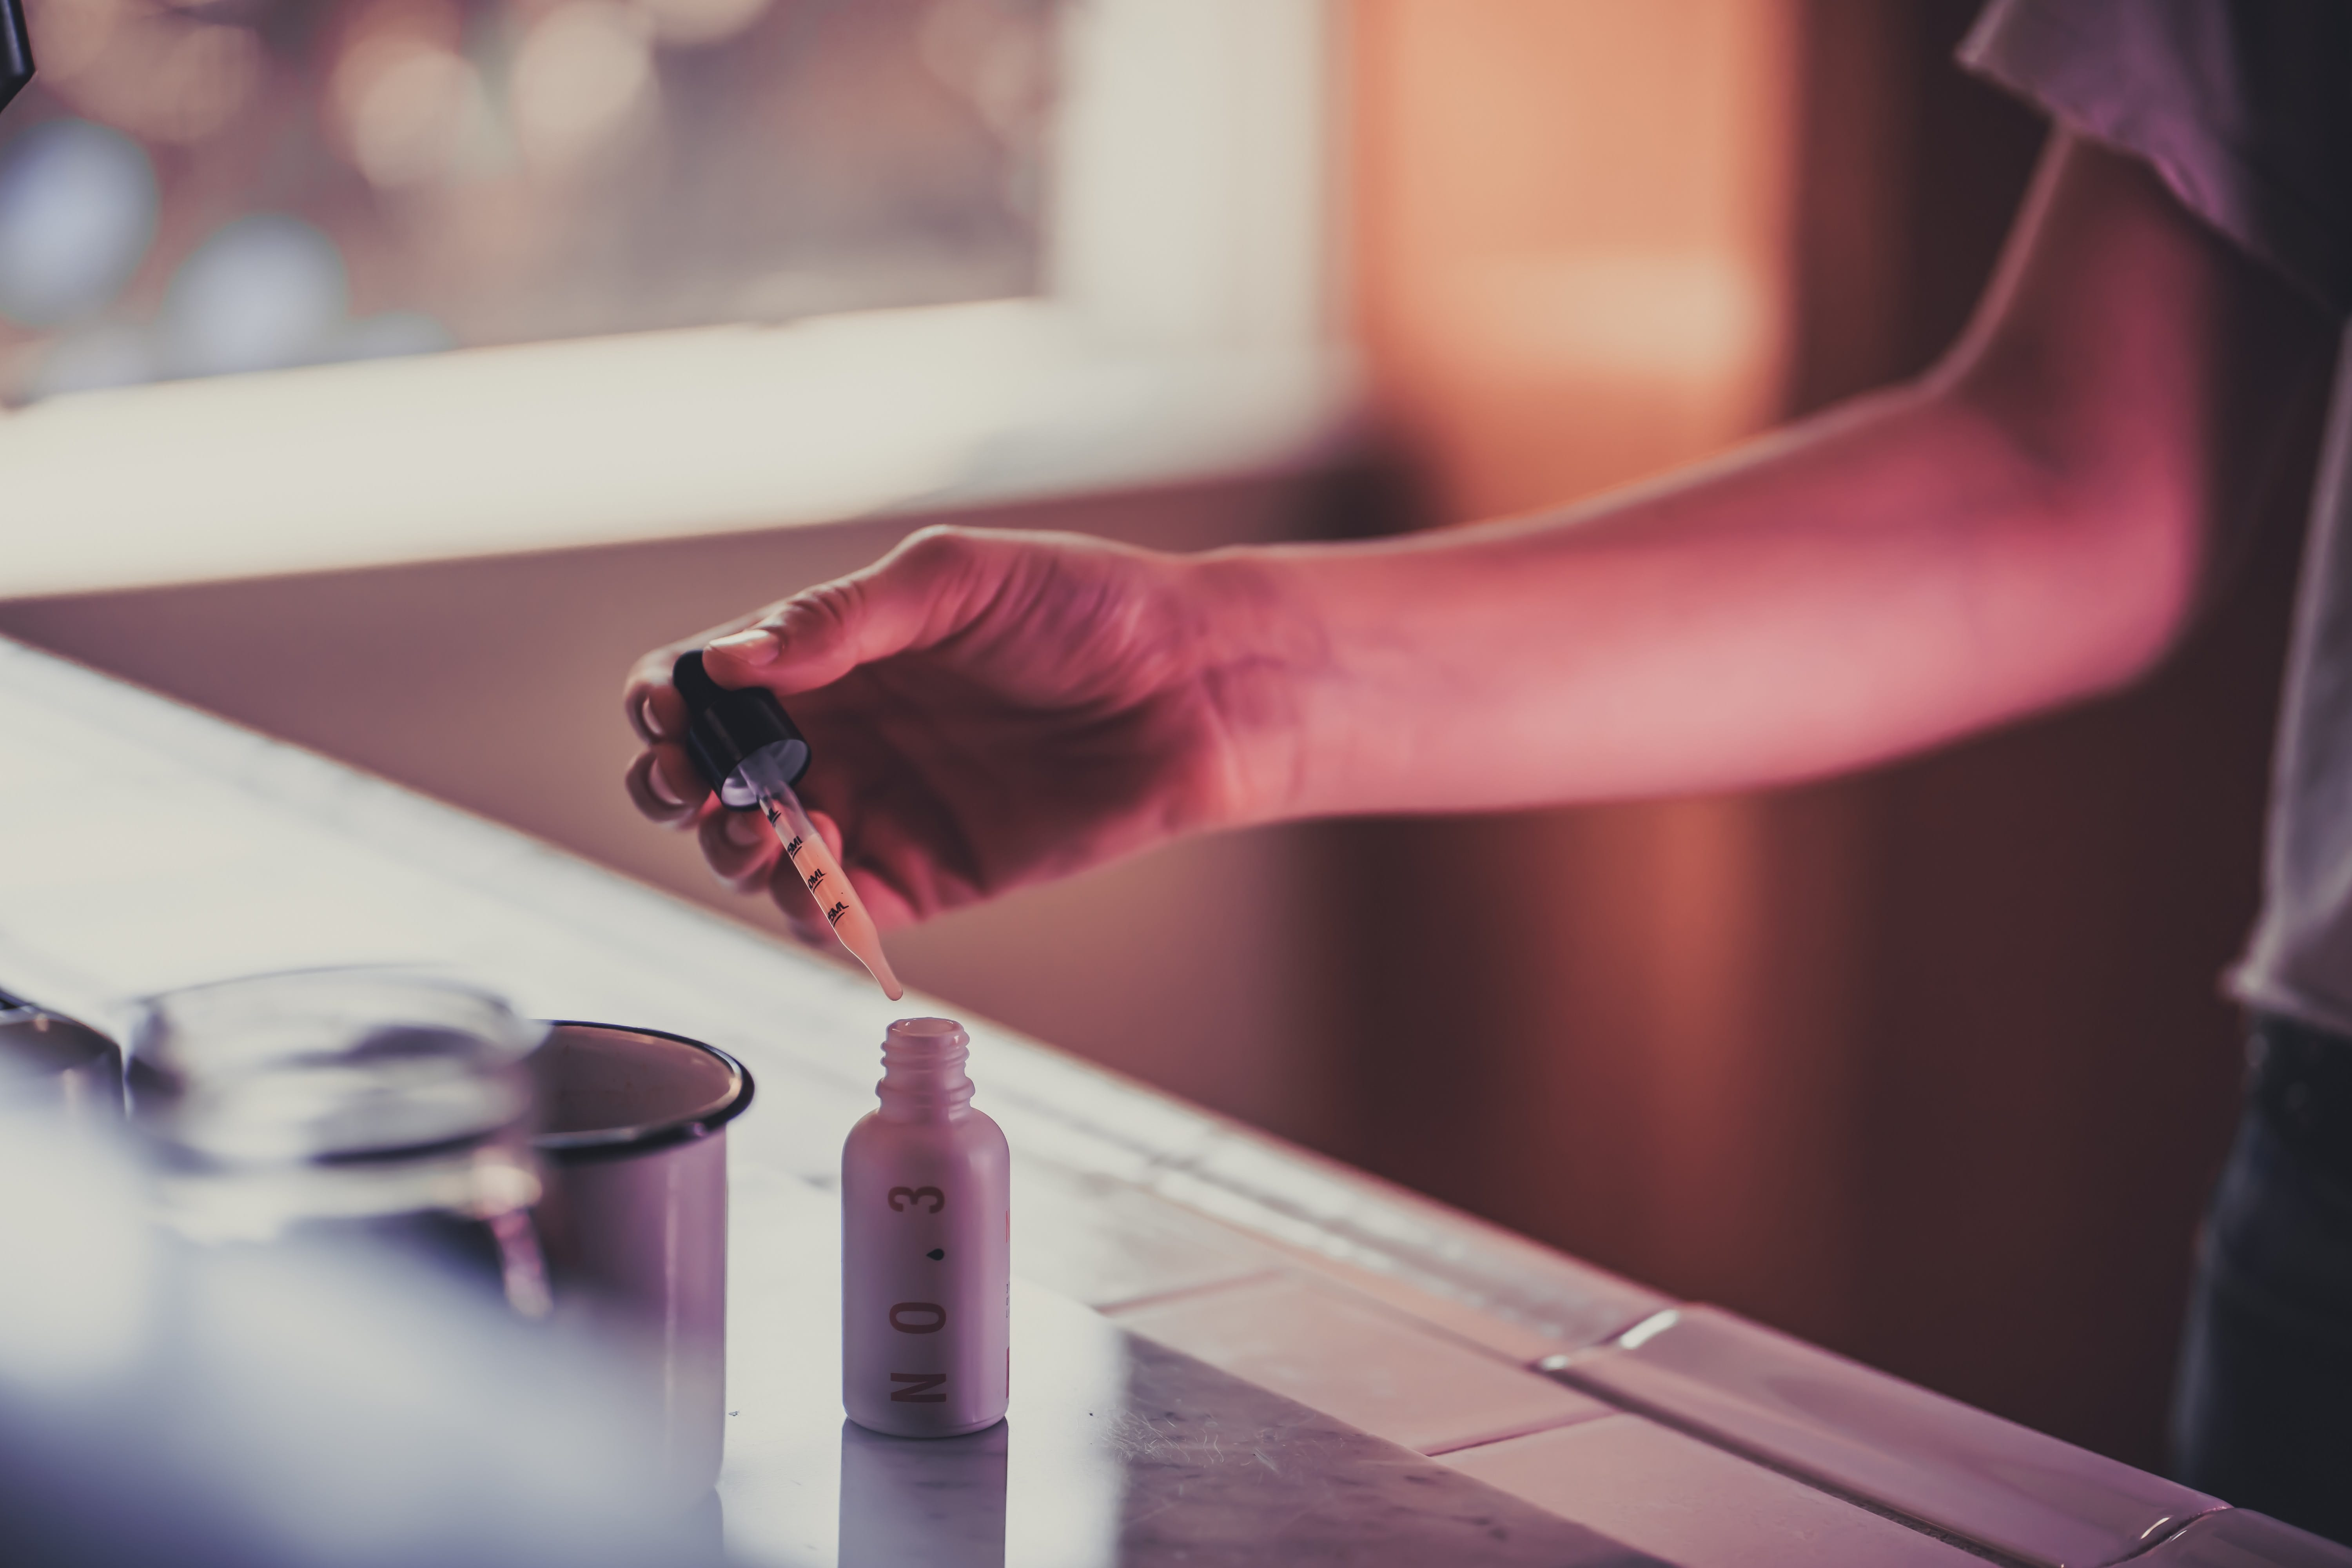 Woman taking few drops of a water-soluble CBD from Eir Health; image by Michal Wozniak, via Unsplash.com.